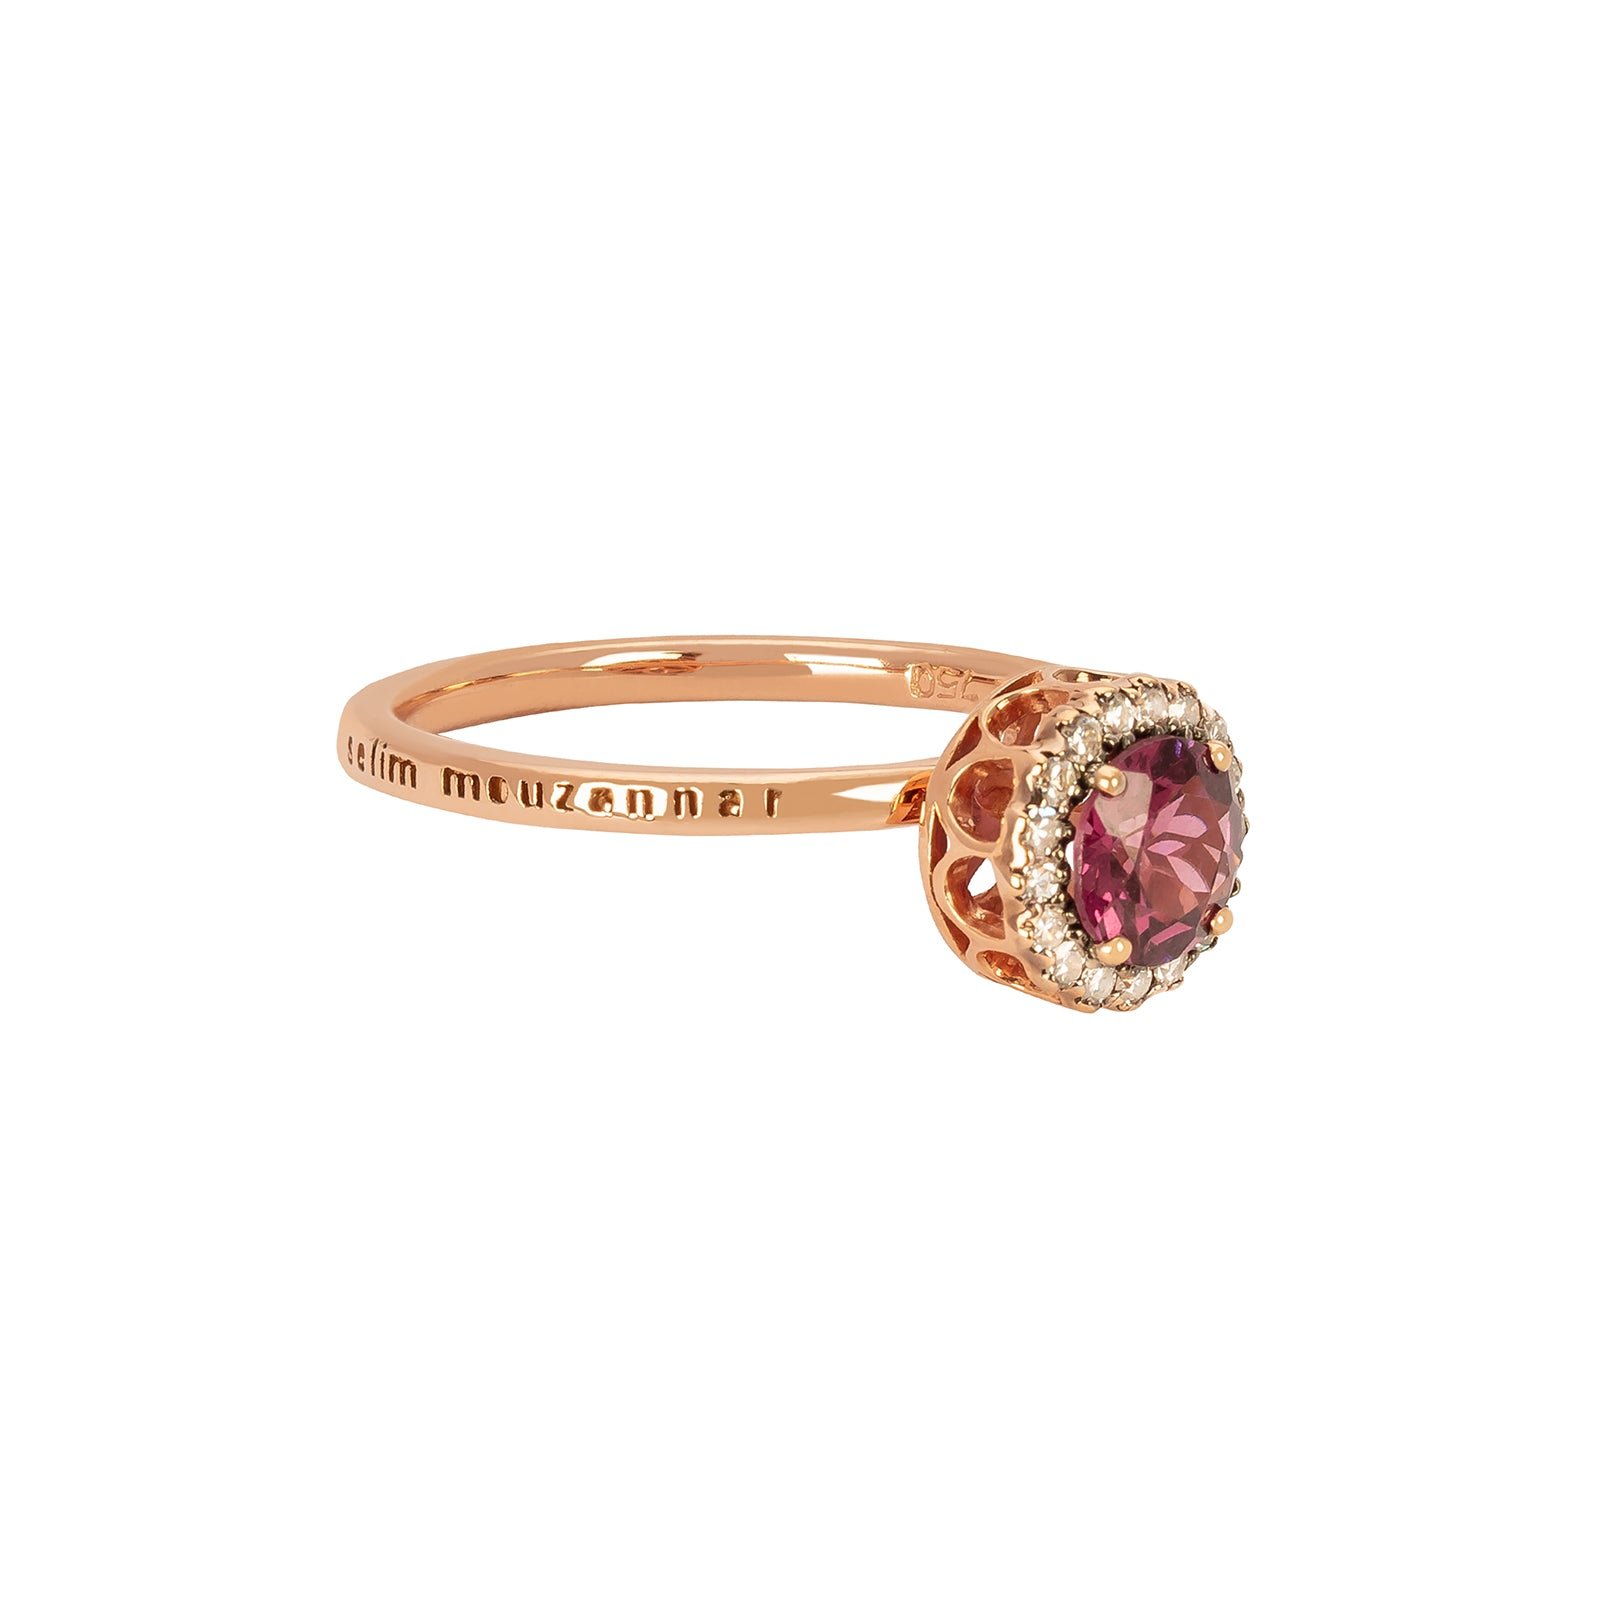 Selim Mouzannar Beruit Basic Ring - Rhodolite & White Diamond - Rings - Broken English Jewelry